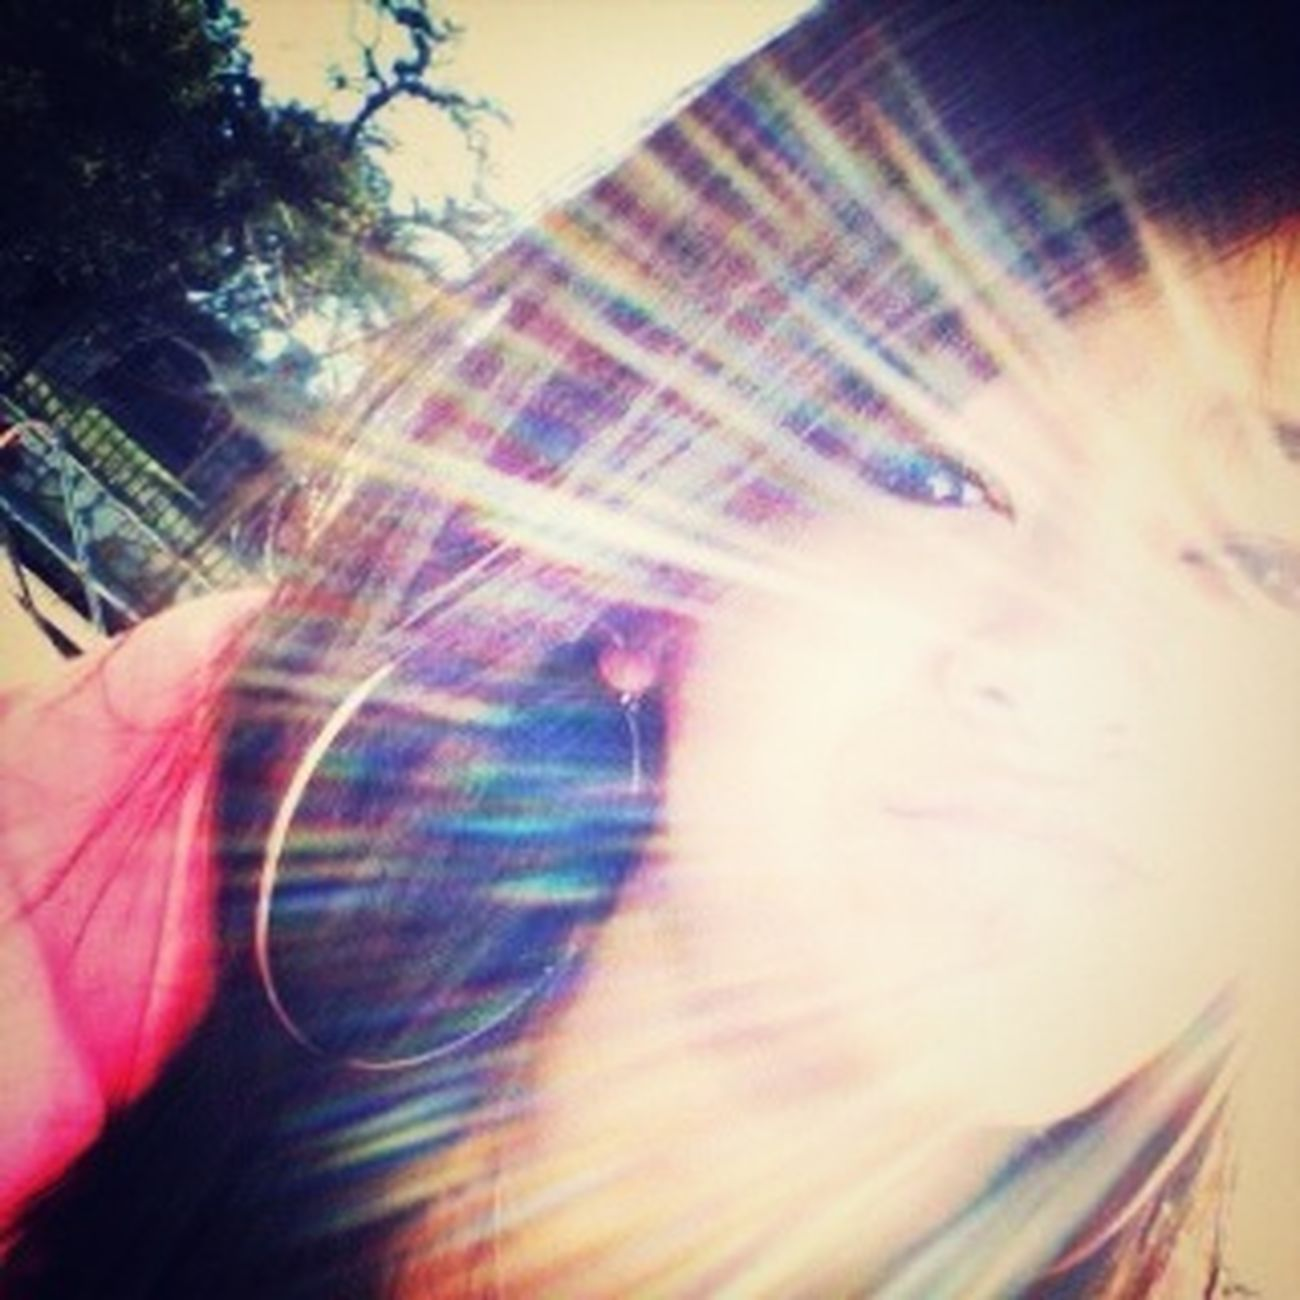 Gonna let the light shine thru me. Throwbackkk